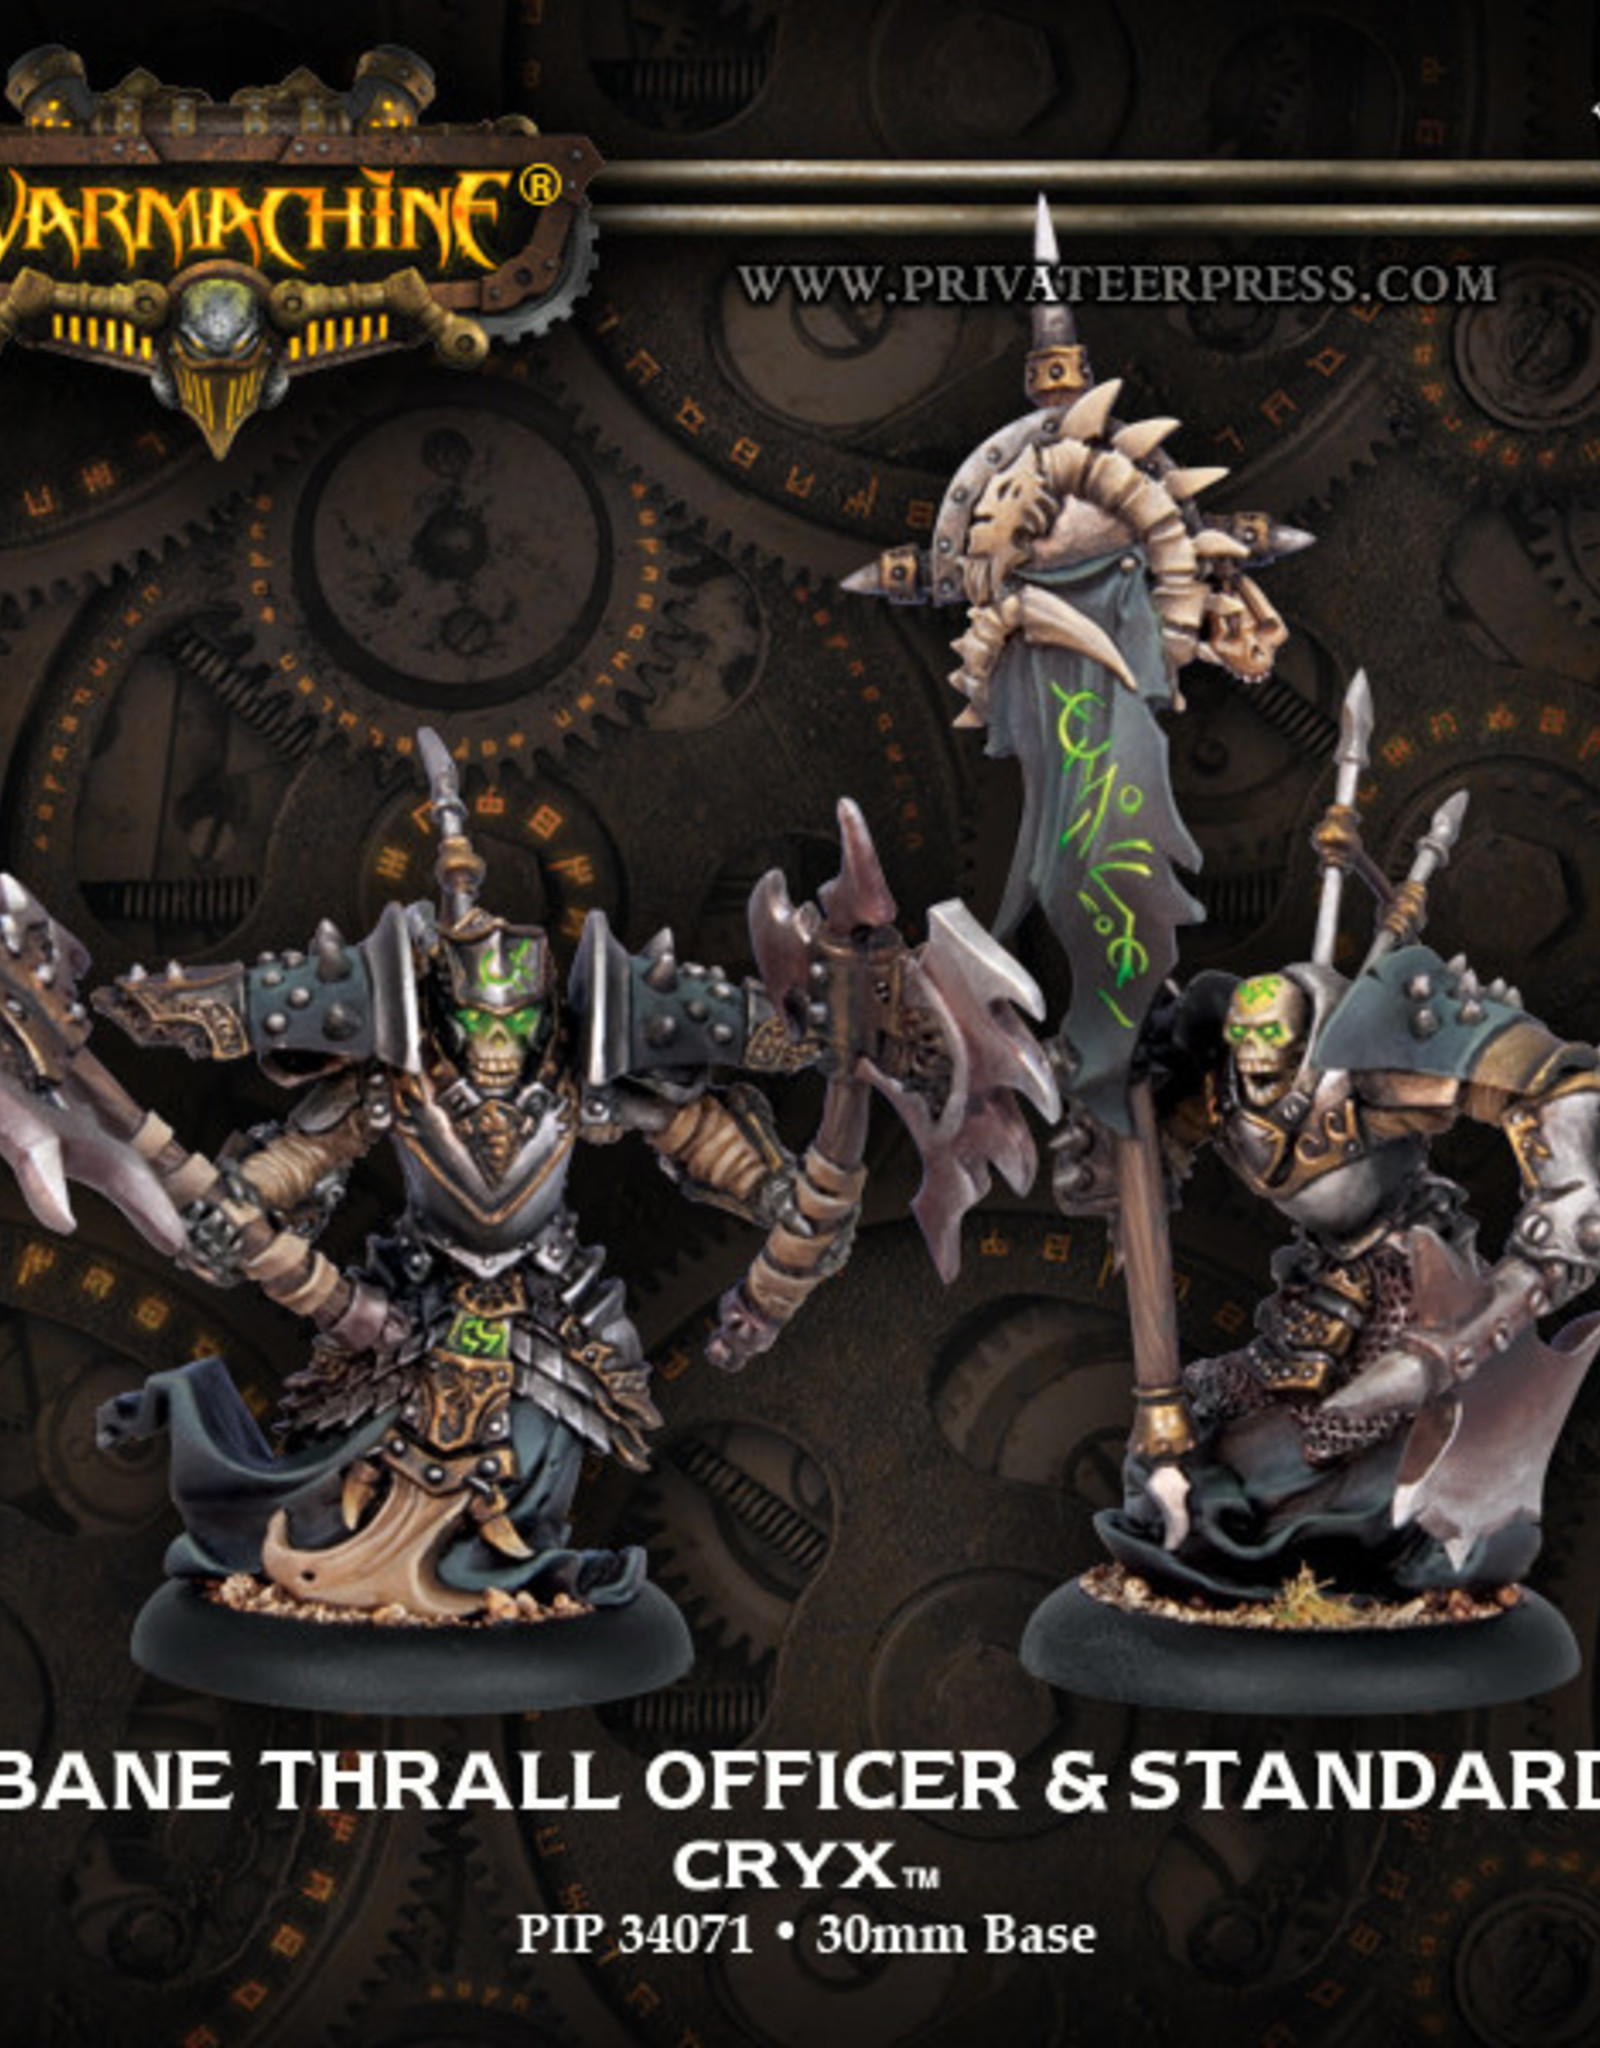 Warmachine Cryx - Bane Thrall Officer